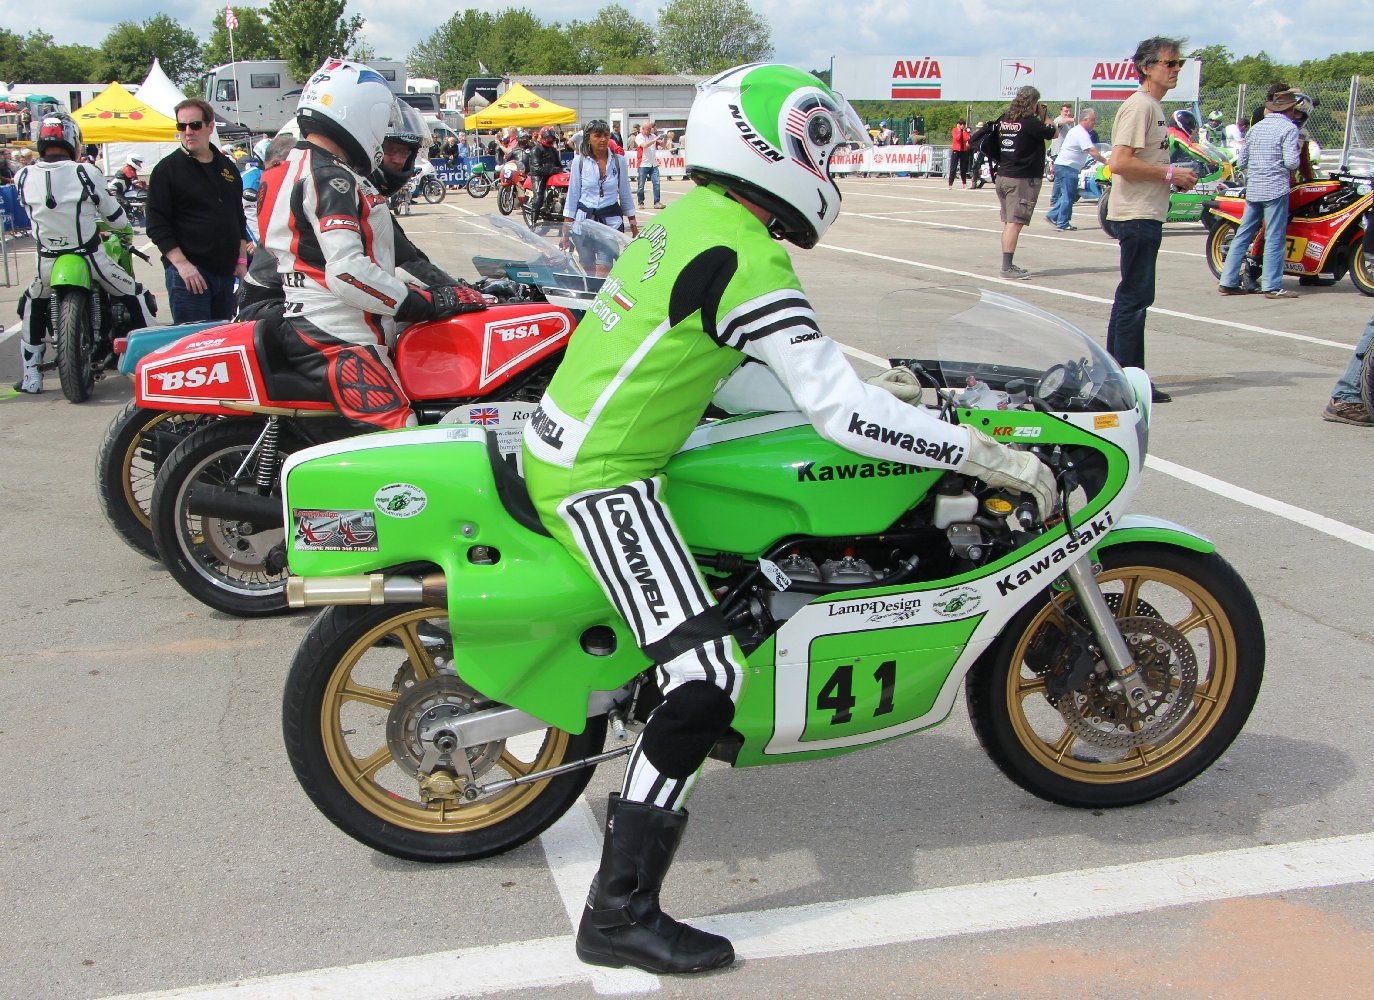 Kork on a KR250 at Coupes Moto Legende 2015